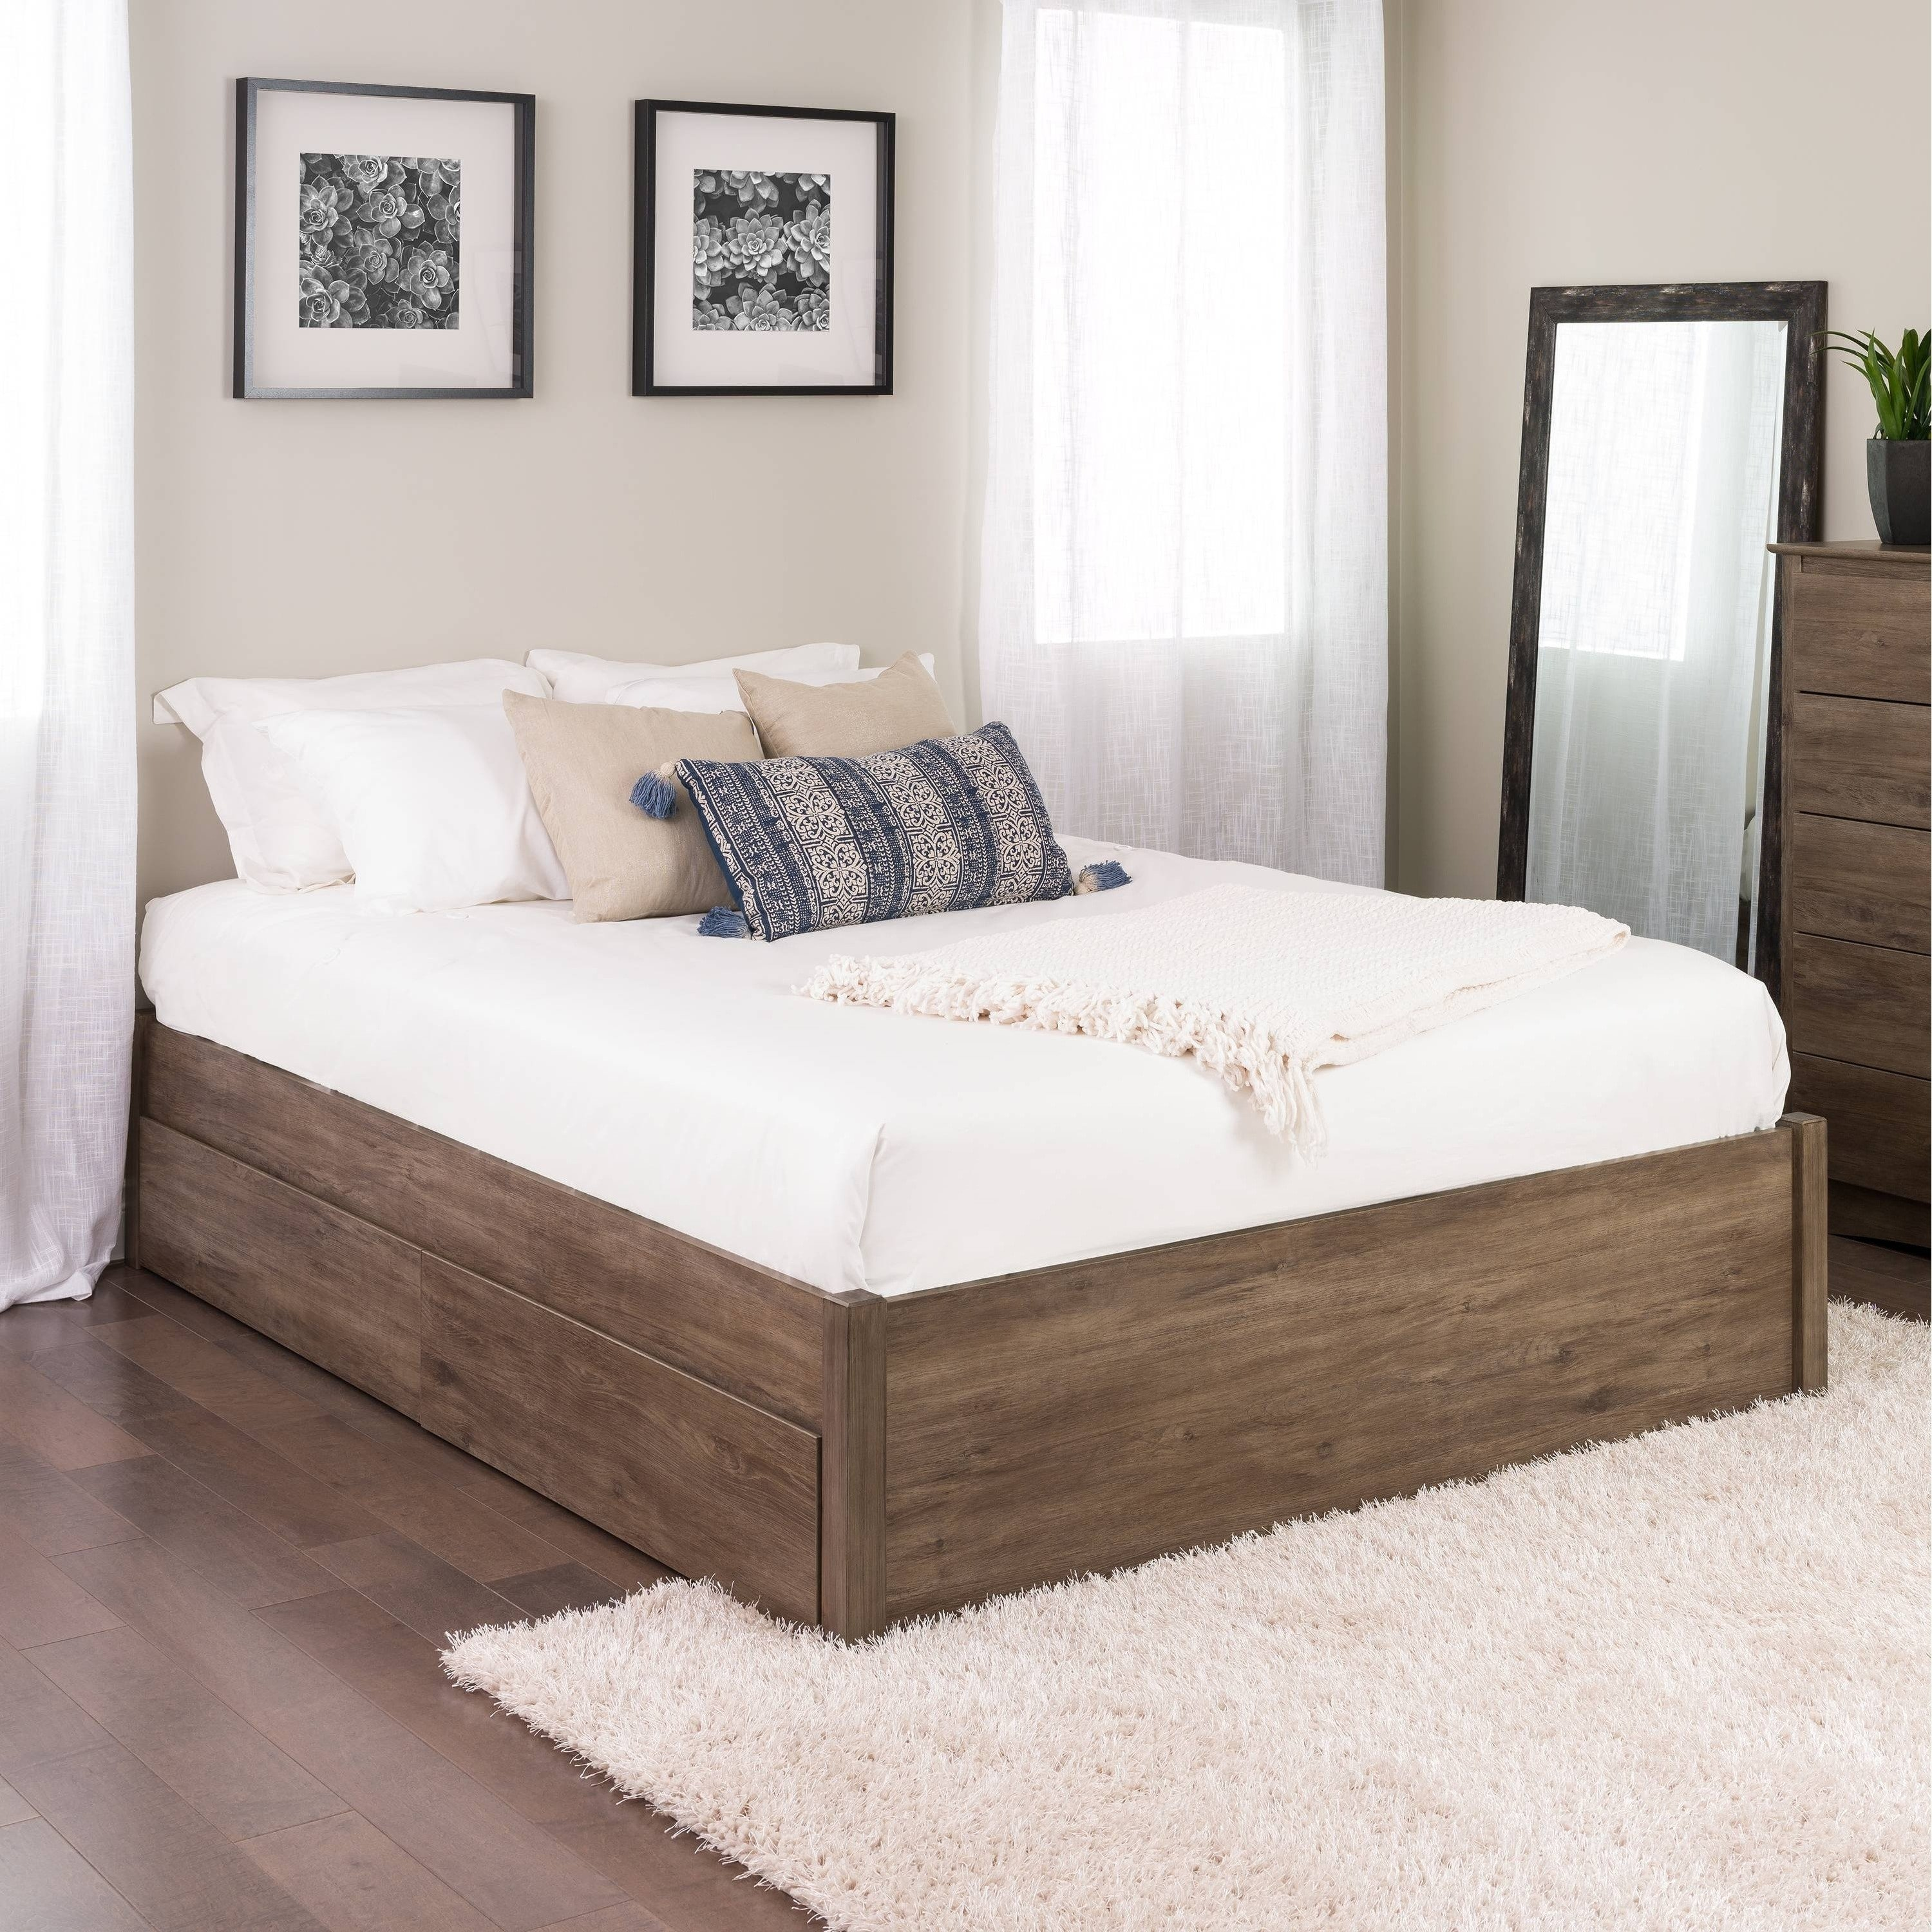 South Shore Bedroom Set New Prepac Queen Select 4 Post Platform Bed with Optional Drawers